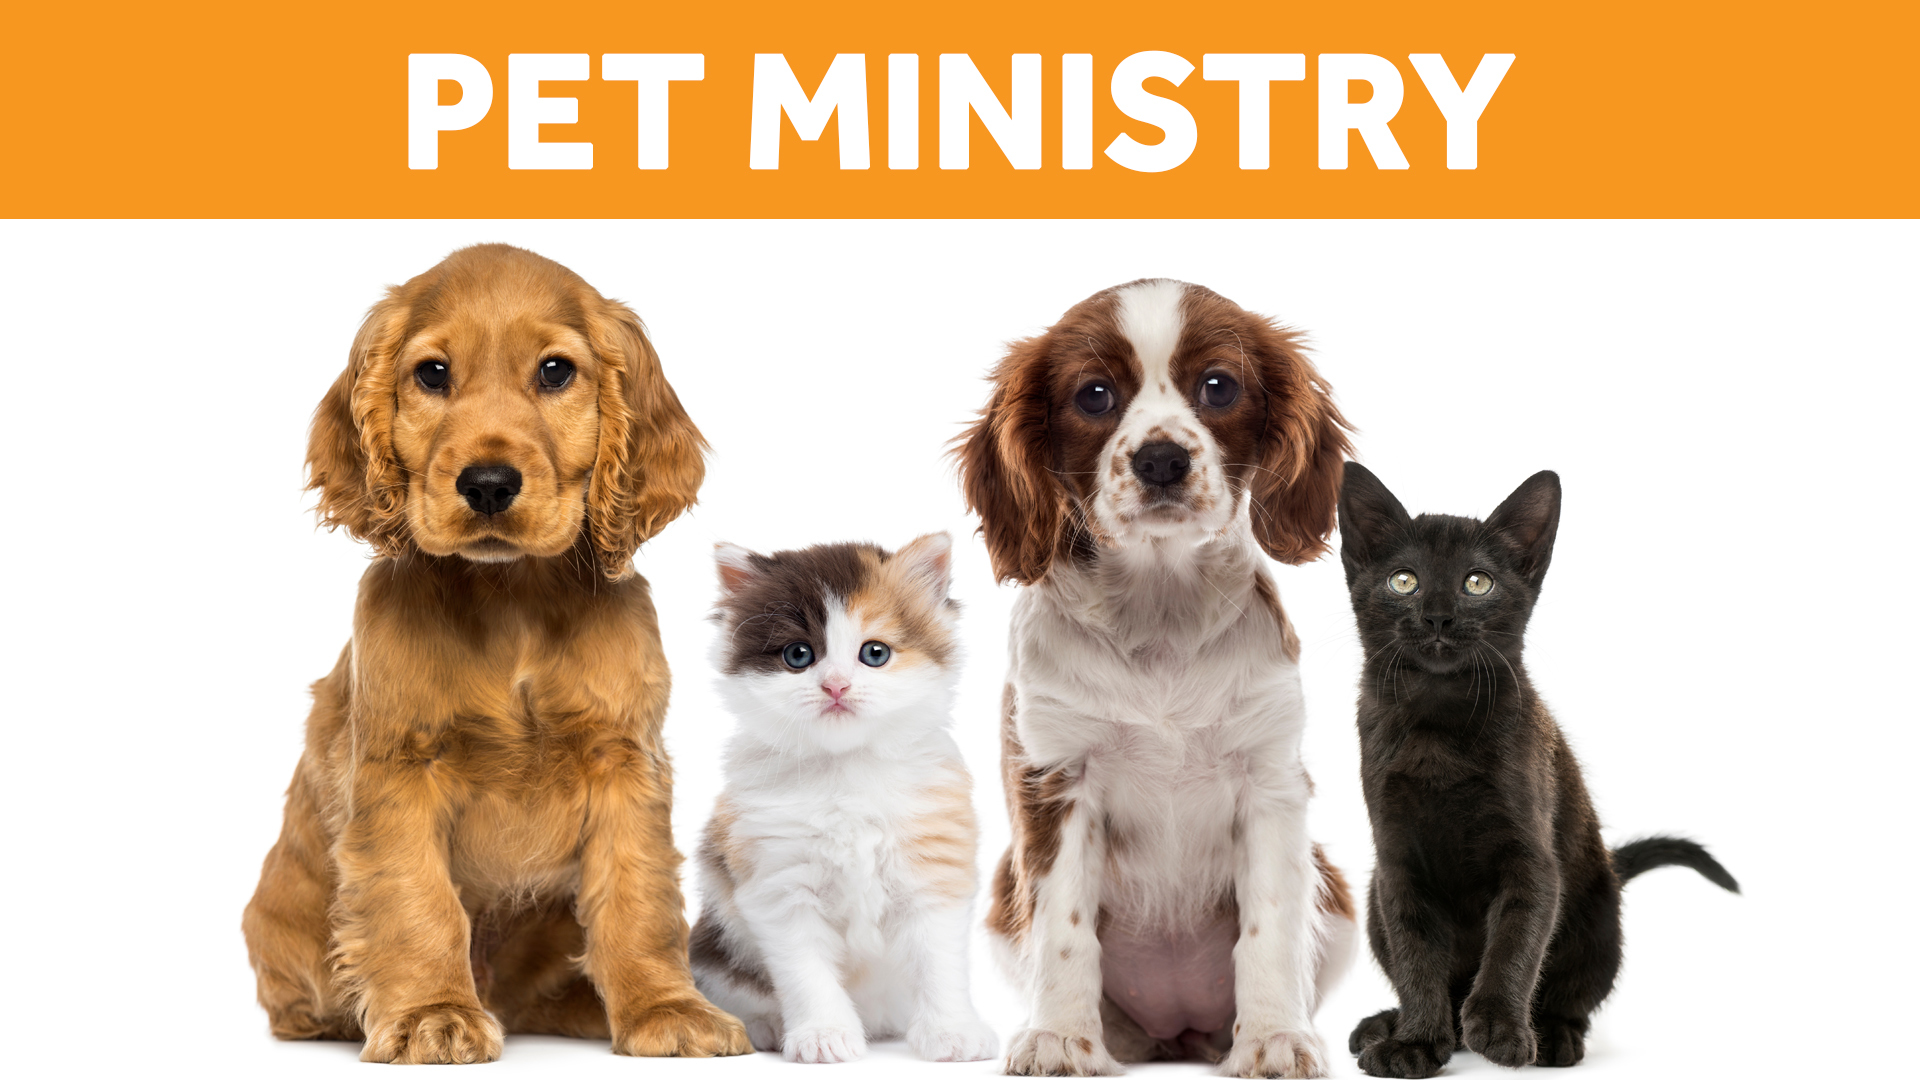 Pet Ministry Resources